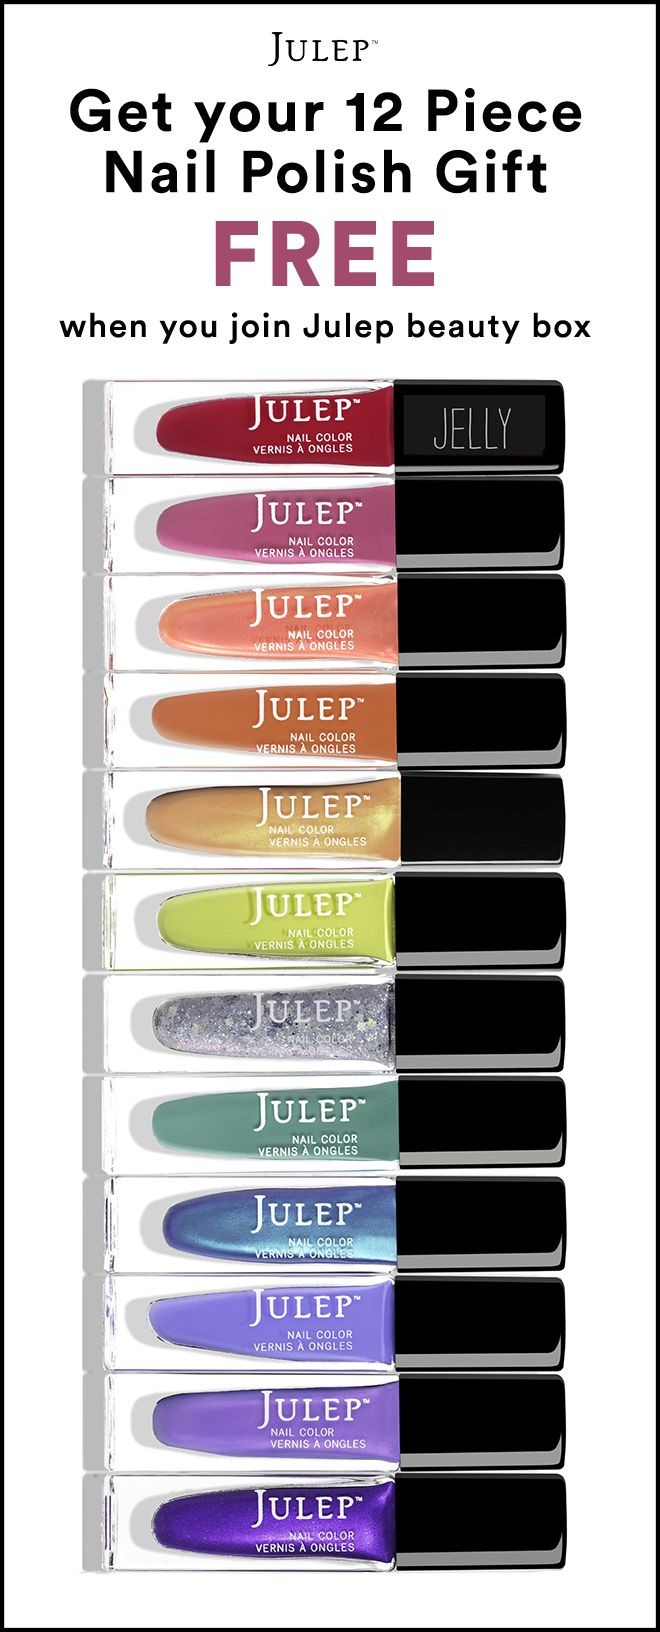 Sign up for the Julep Beauty Box now and get our best-selling 12-pc polish set ($168 value) ON US + Free shipping. Hurry! Offer ends 5/15.